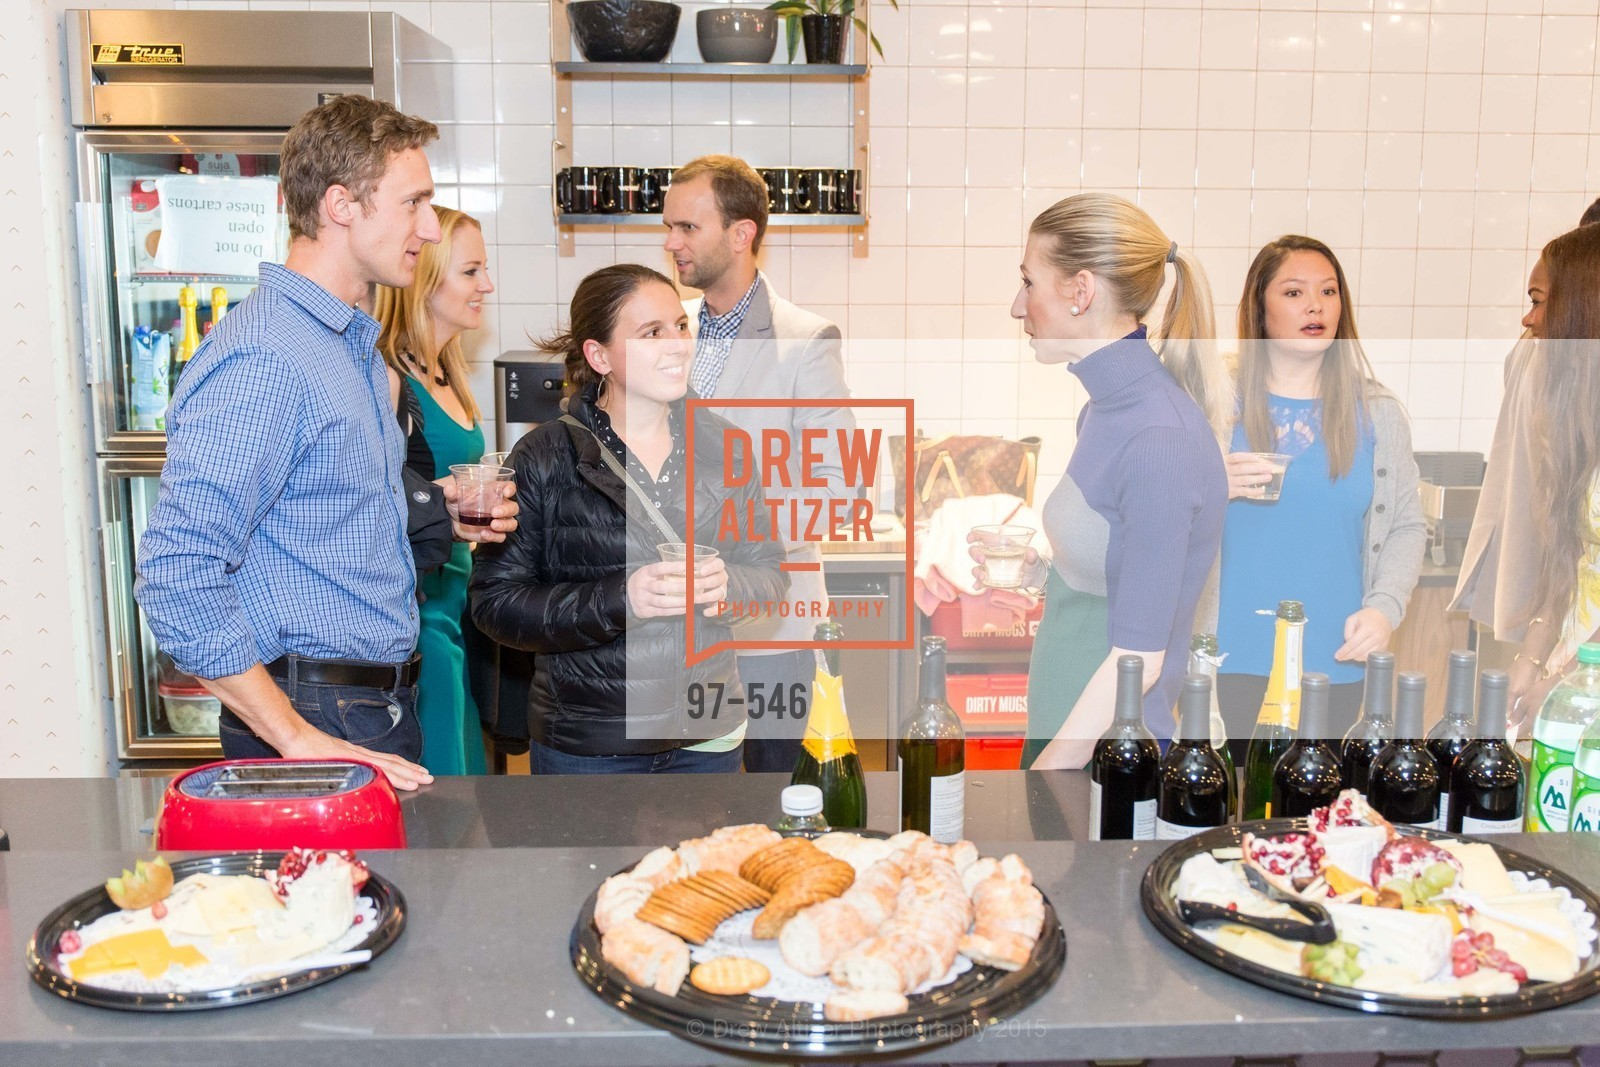 Travis Breznak, Nicole Breznak, Maggie Winterfeldt Clark, San Francisco Ballet ENCORE! Season Preview Party, WeWork. 535 Mission Street, 14th Floor, November 17th, 2015,Drew Altizer, Drew Altizer Photography, full-service agency, private events, San Francisco photographer, photographer california